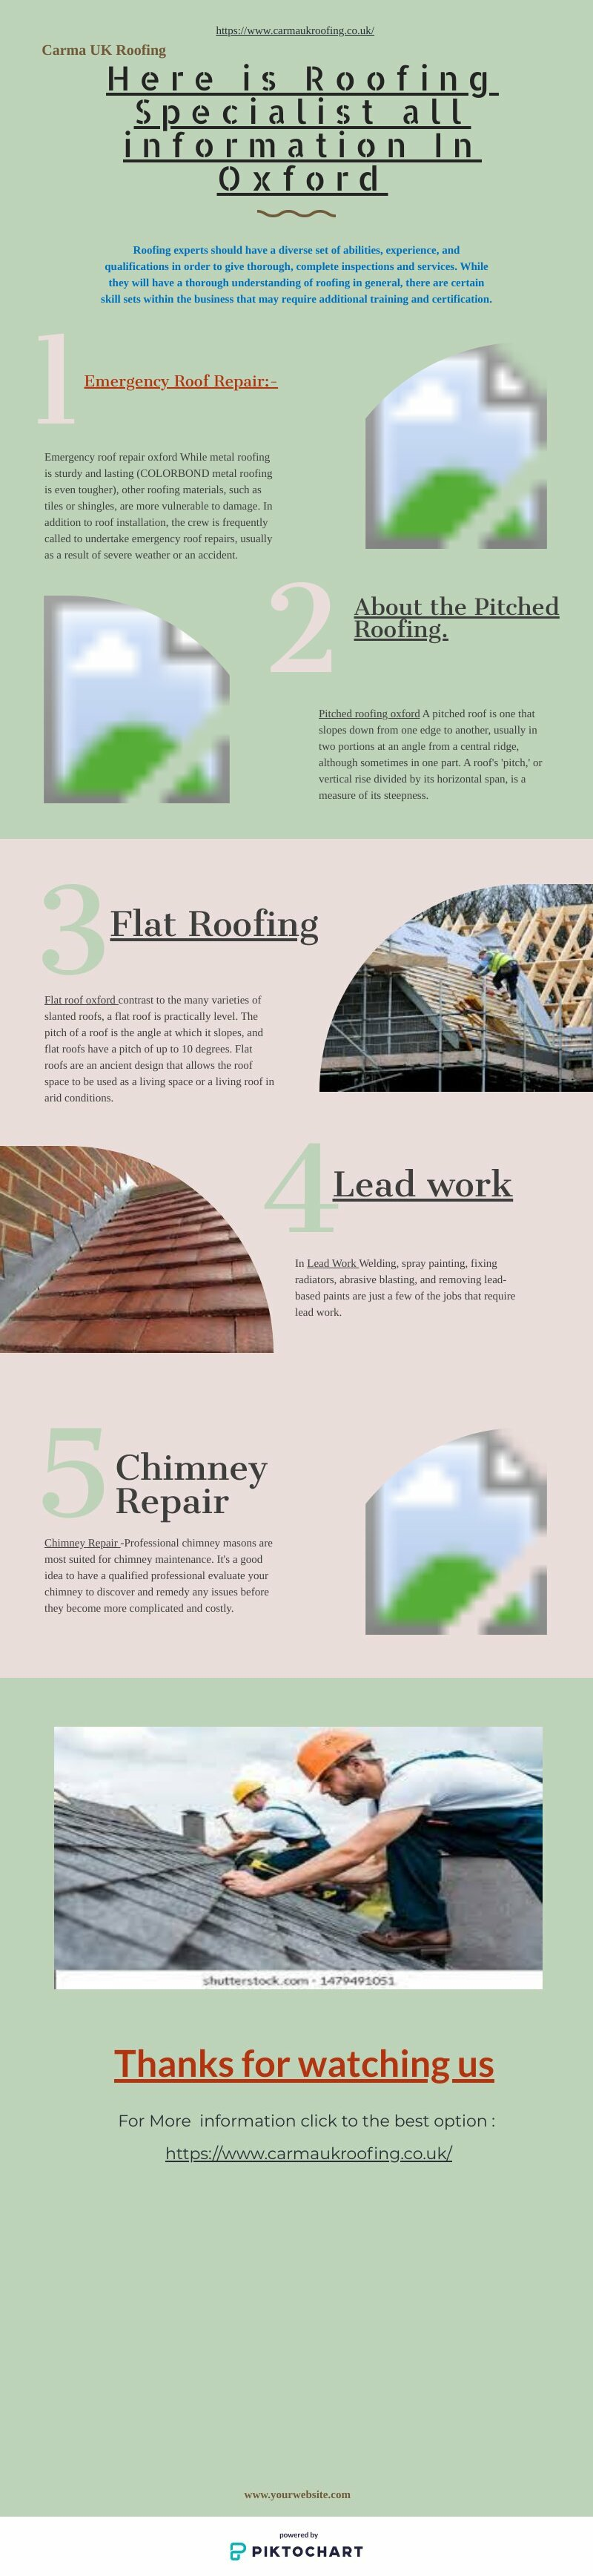 Roofing Specialist In Oxford